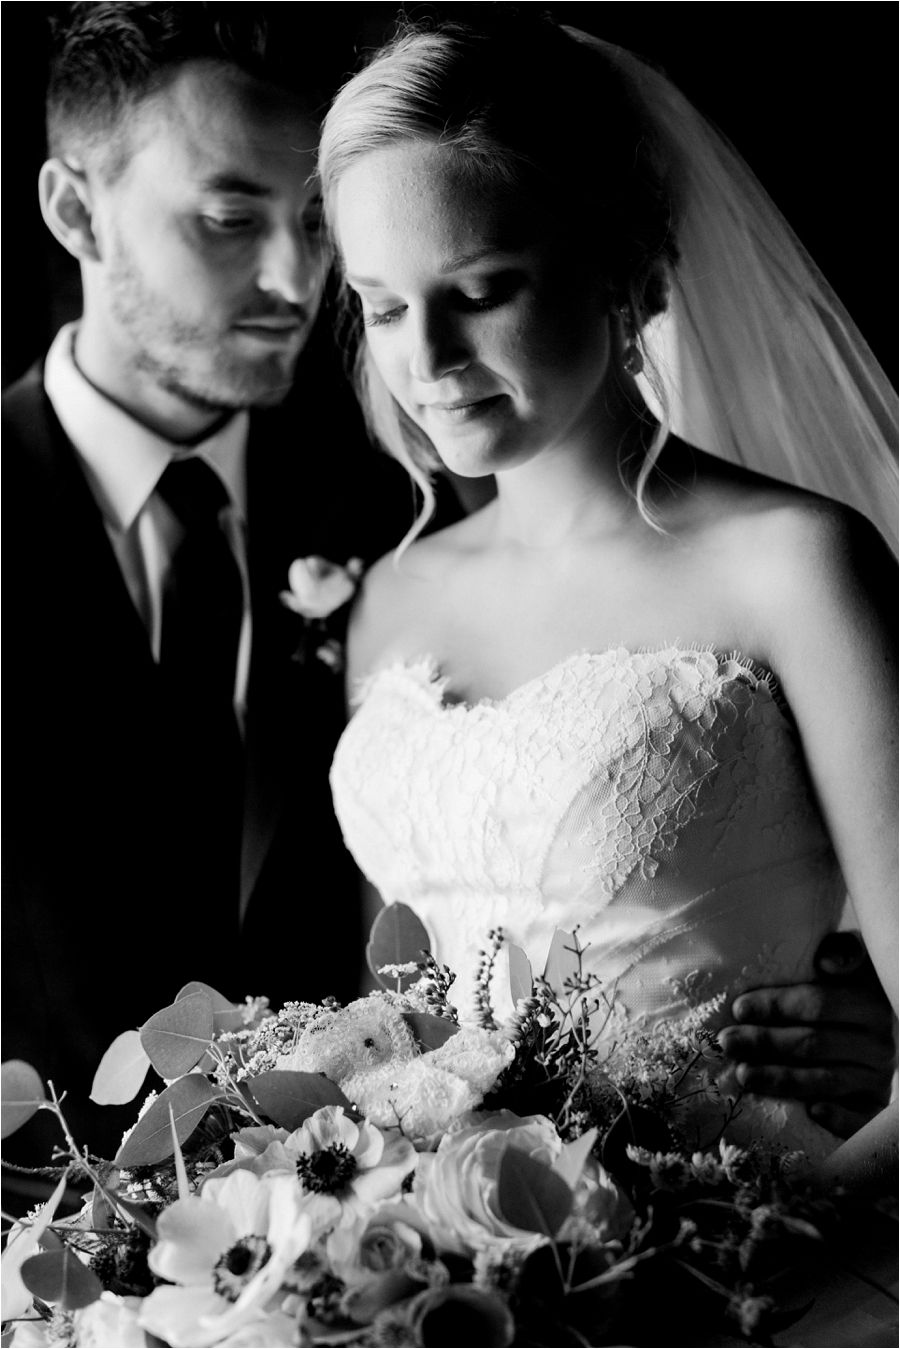 Bride and groom portraits first look black and white earthy